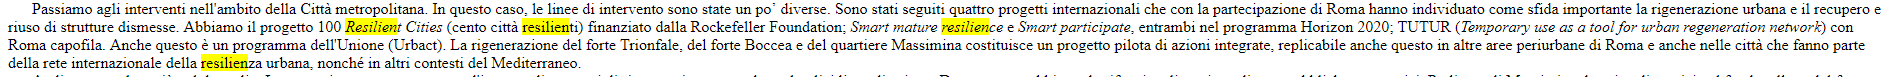 giovanni caudo 100 resilient cities roma virginia raggi - 2